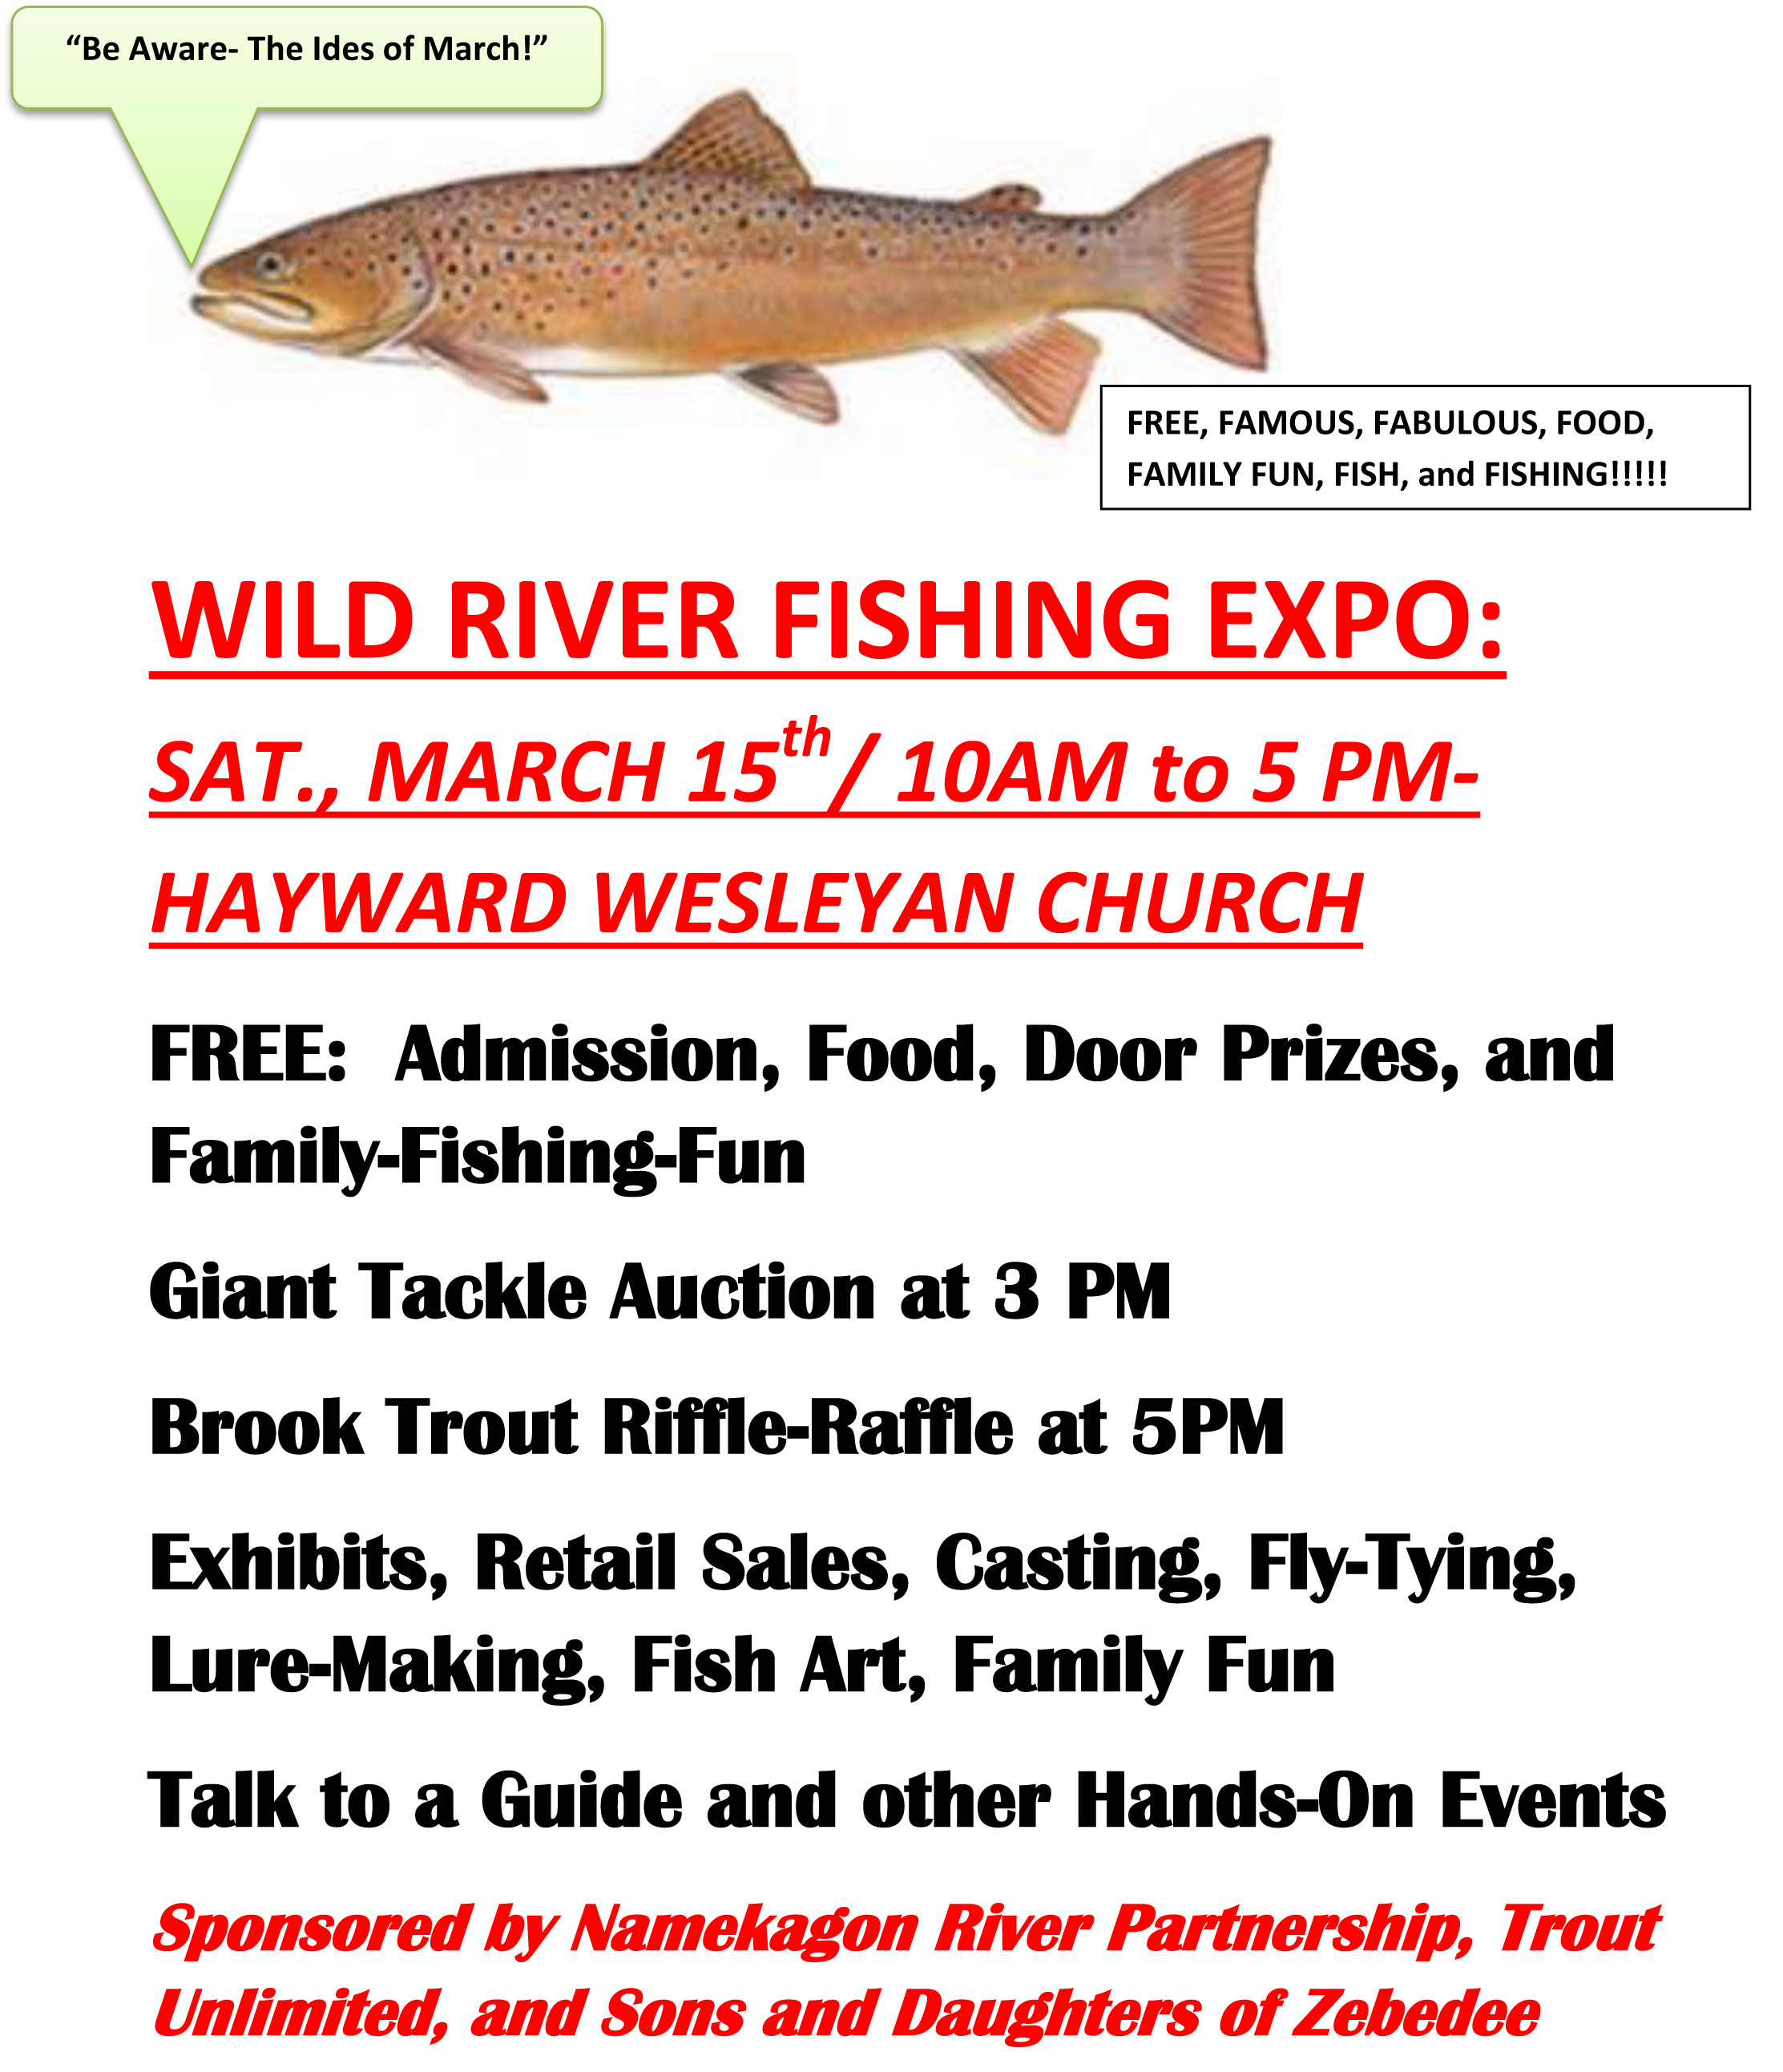 WILD RIVER FISHING EXPO SAT